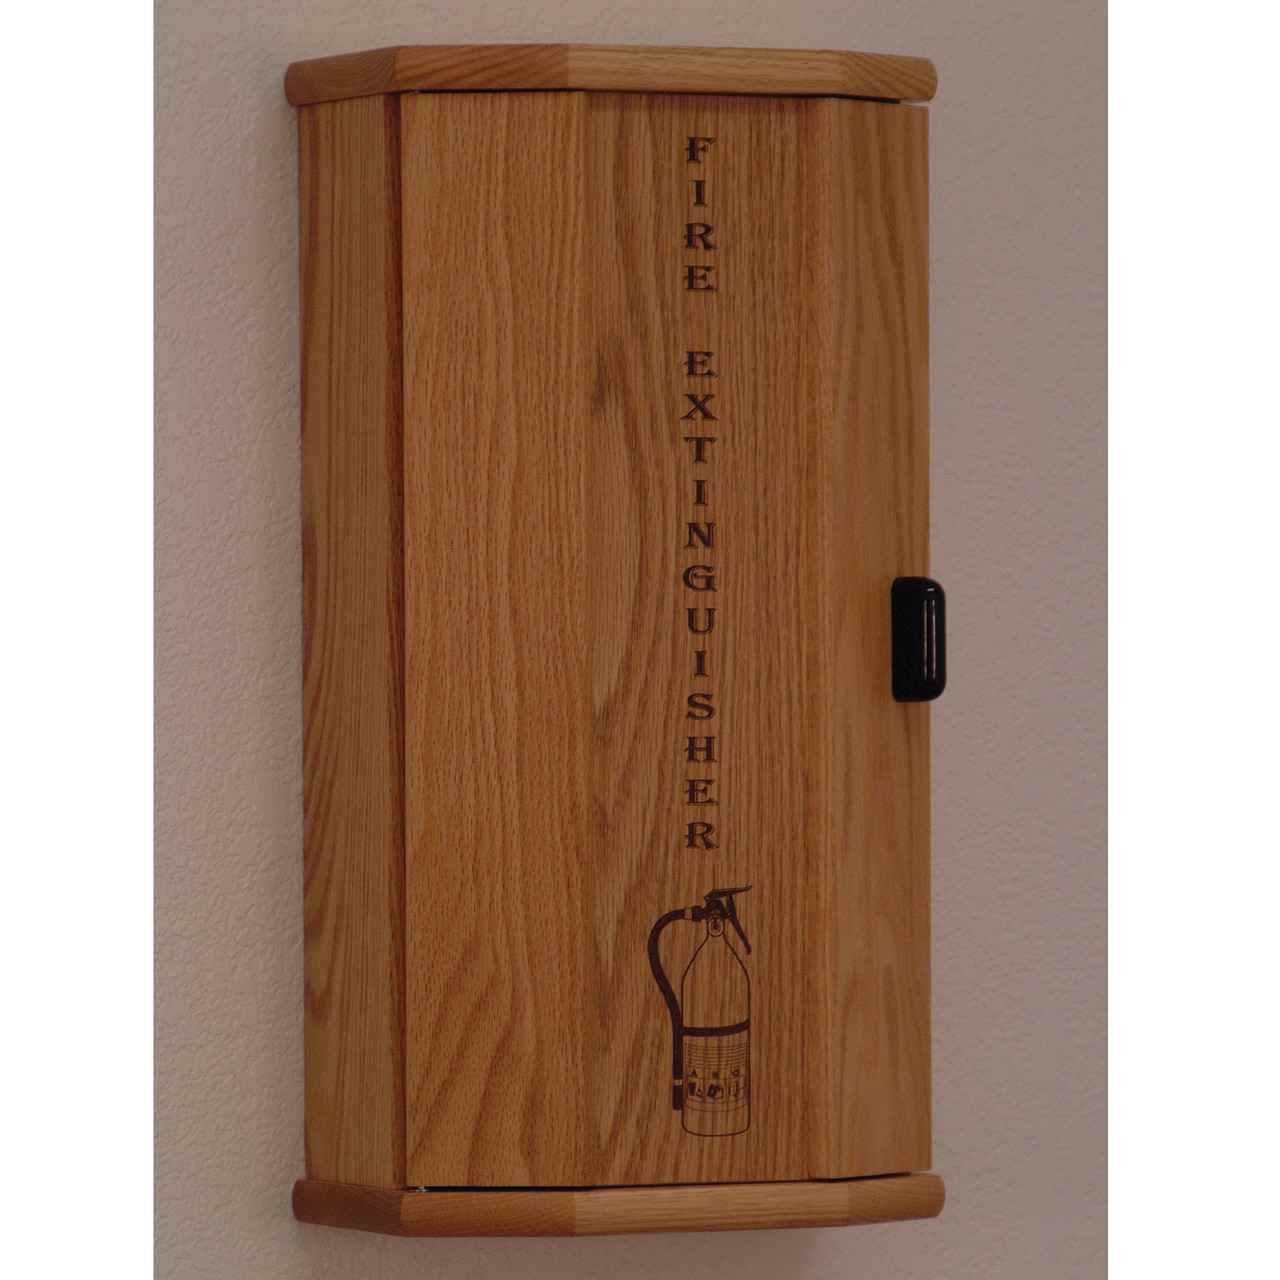 Wooden Mallet FEC10 Fire Extinguisher Cabinet With Engraved Front Panel